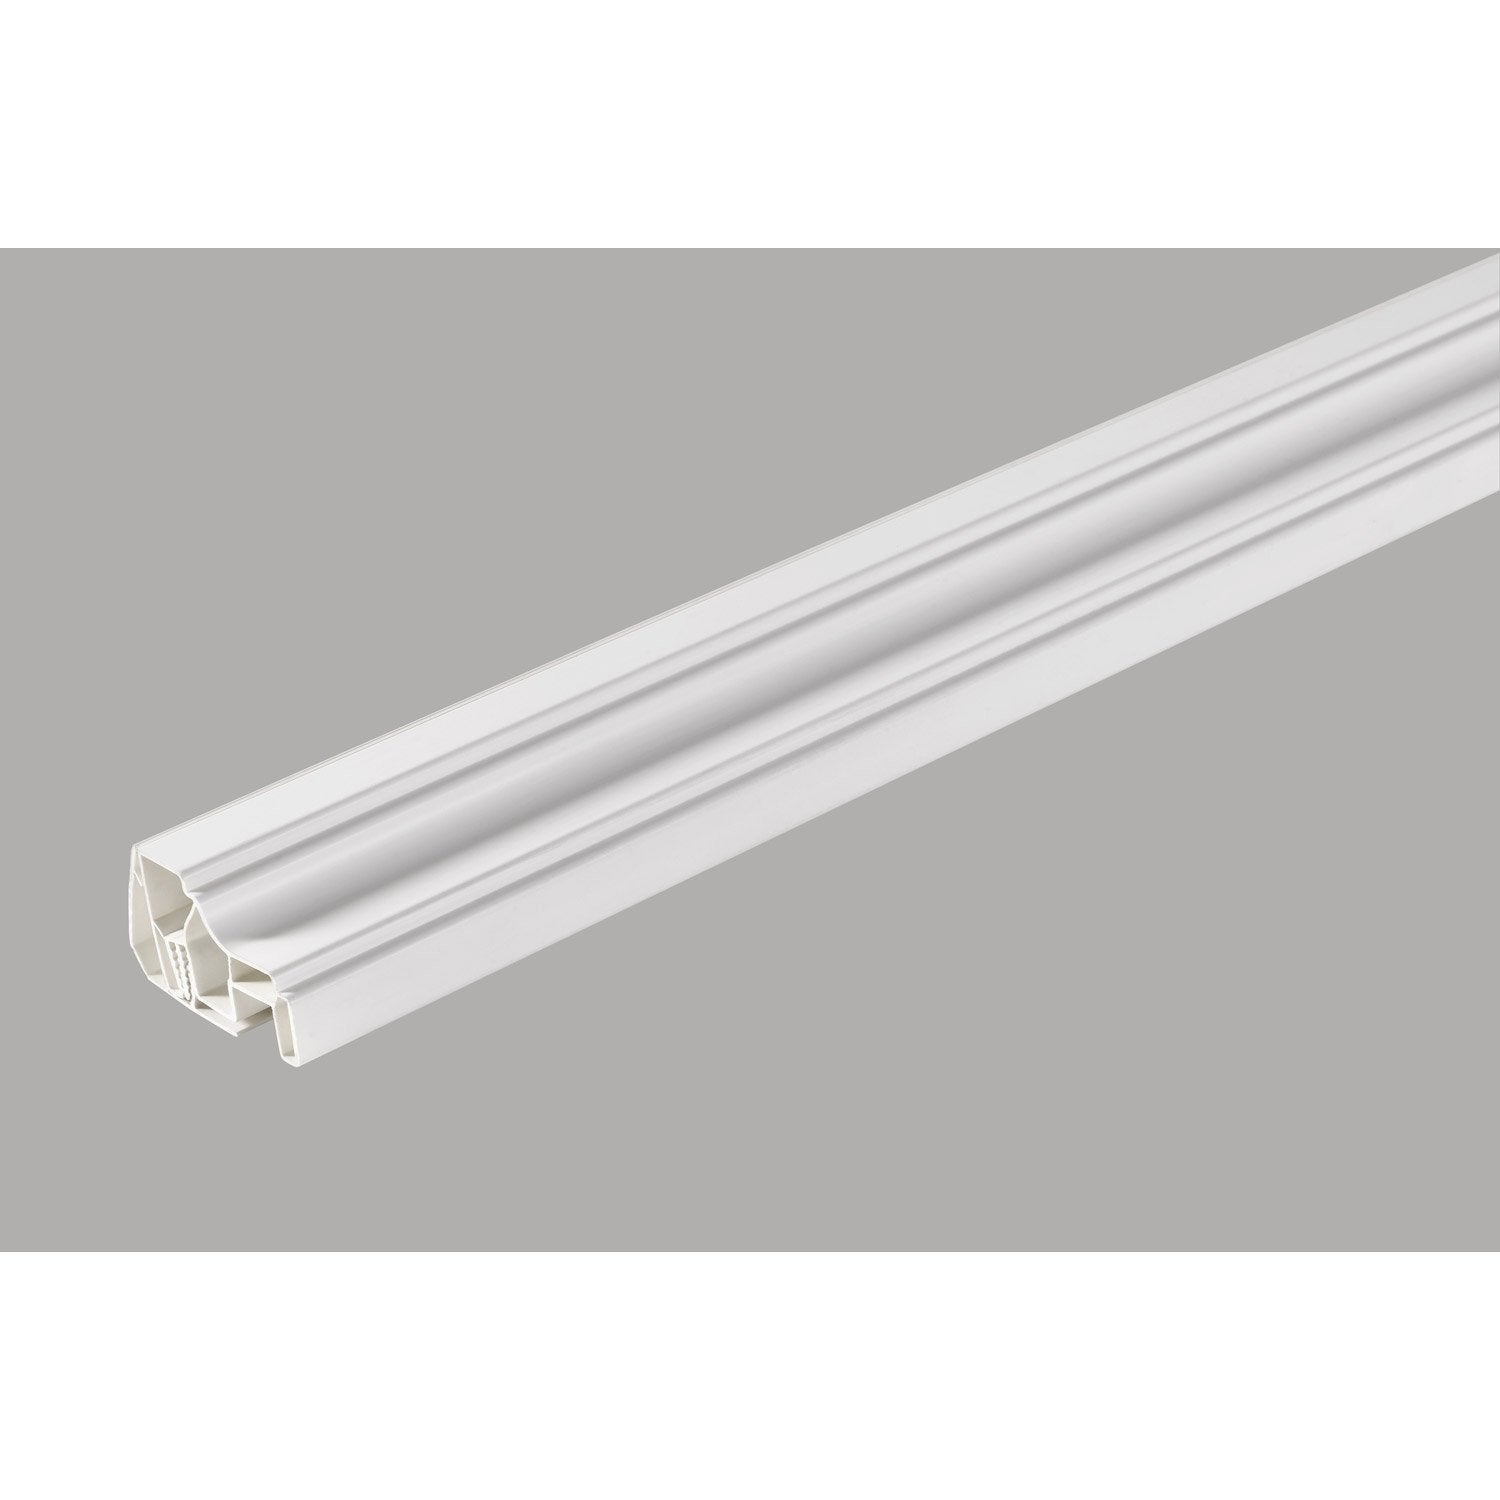 profil de finition clipsable pvc blanc 260x4x5cm leroy